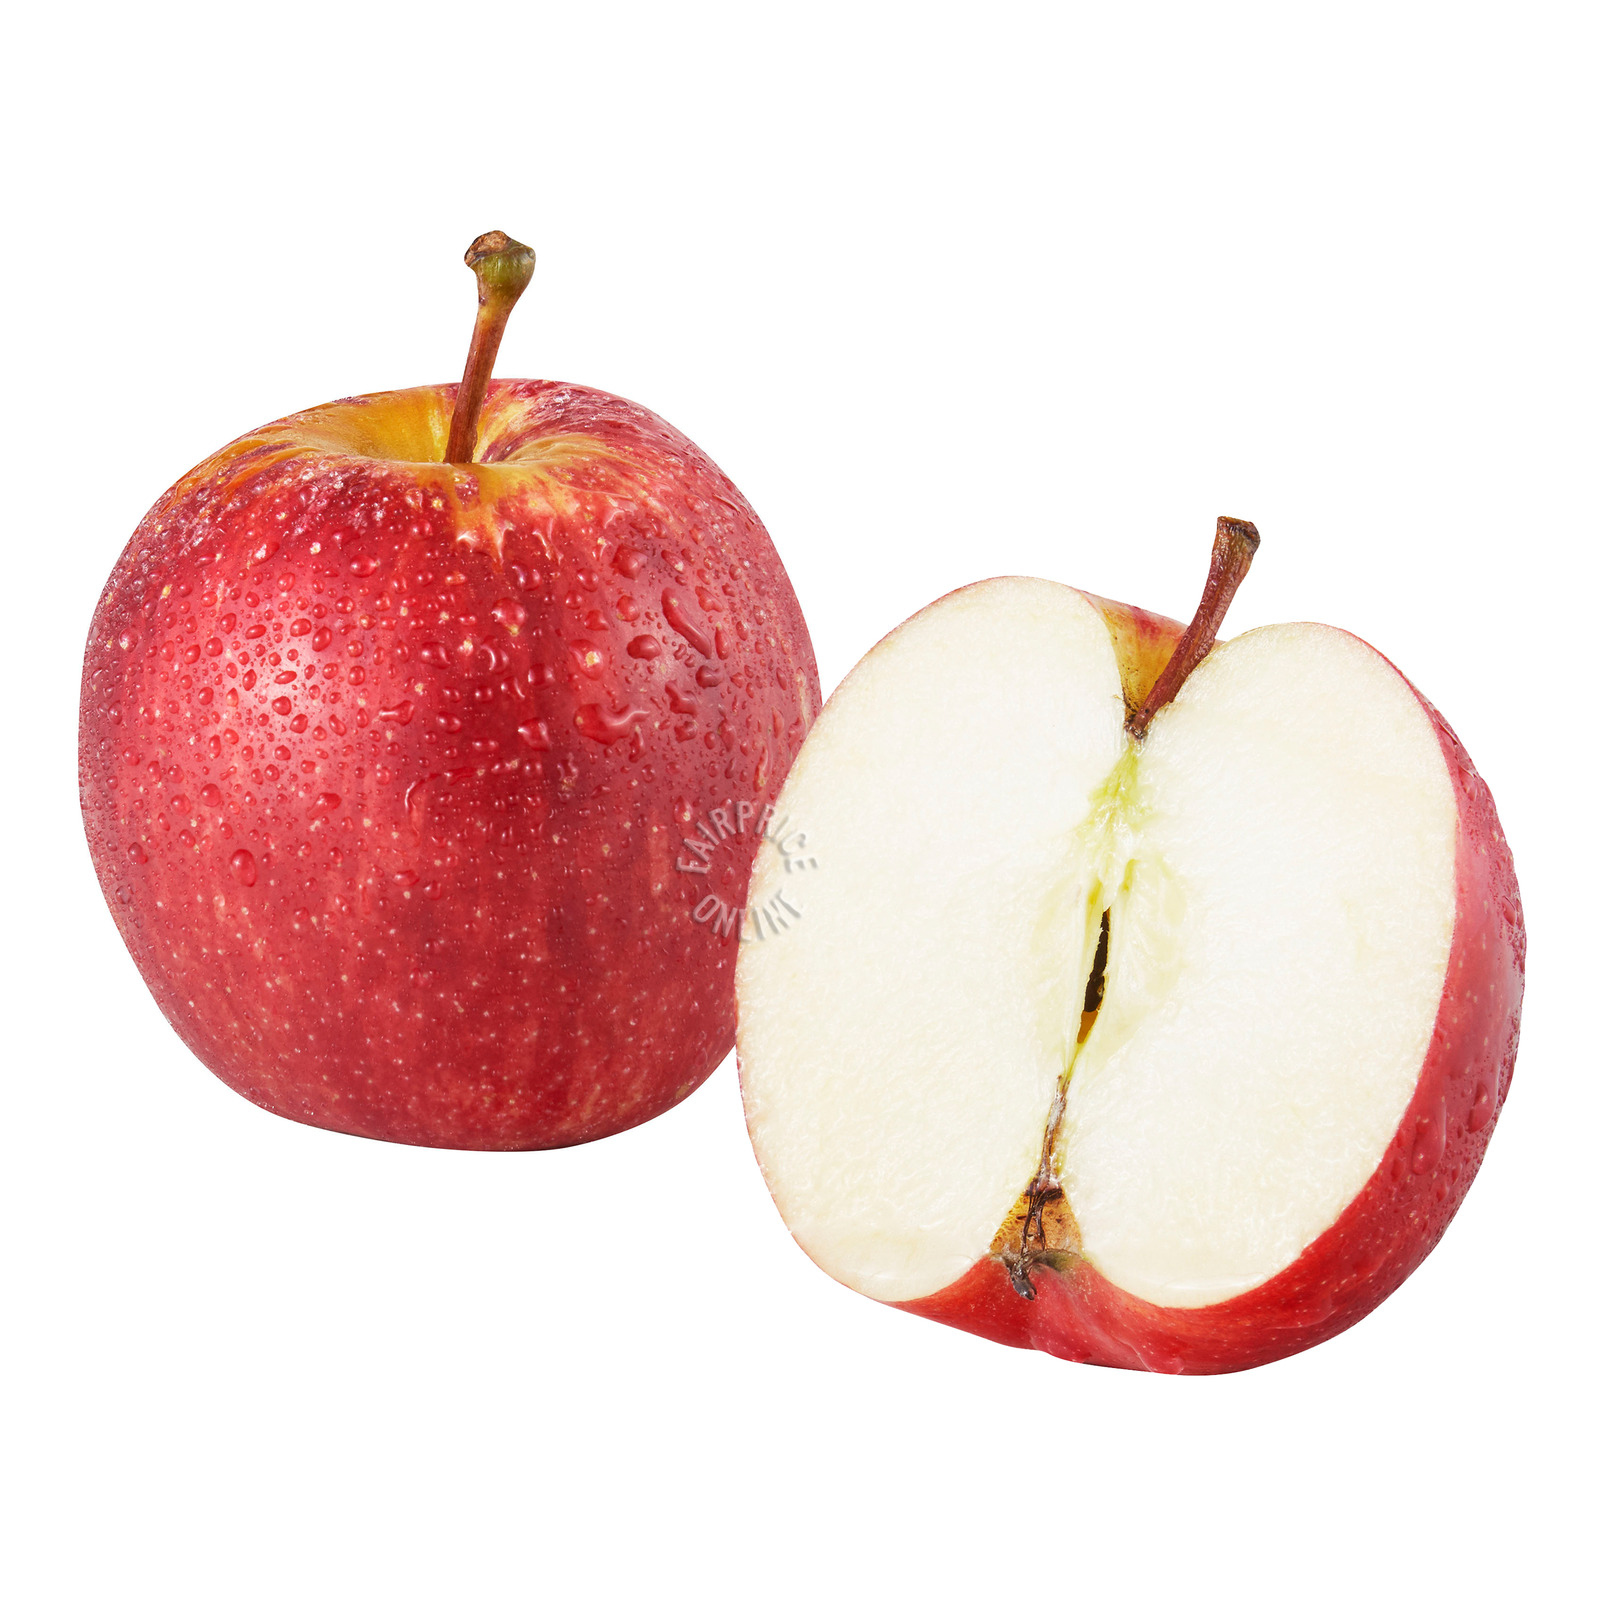 Kromco South Africa Apple - Cripps Red